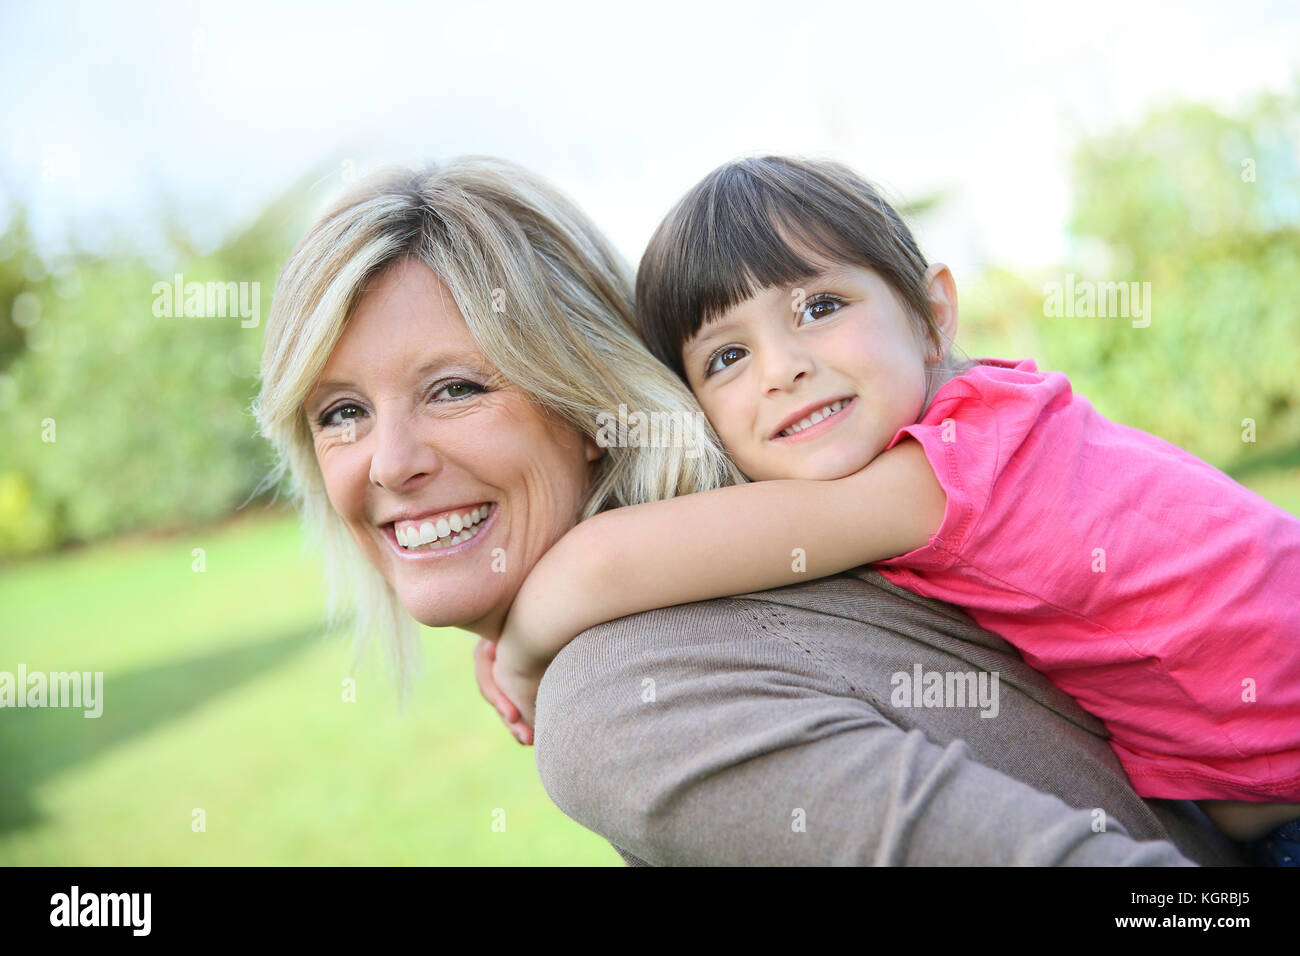 Mother giving piggyback ride to little girl - Stock Image